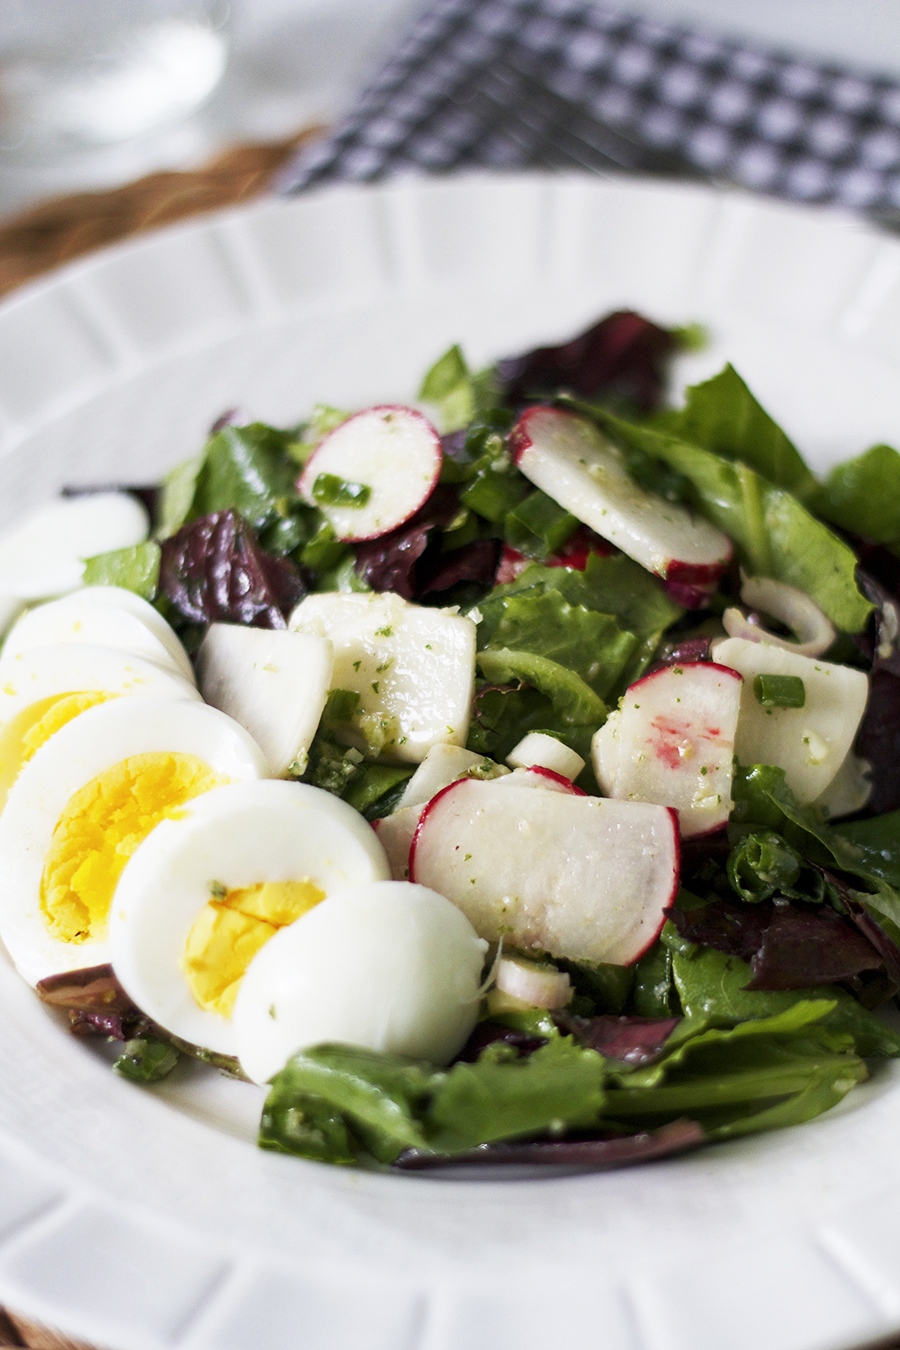 Radish & Turnip Salad with Oregano Vinaigrette